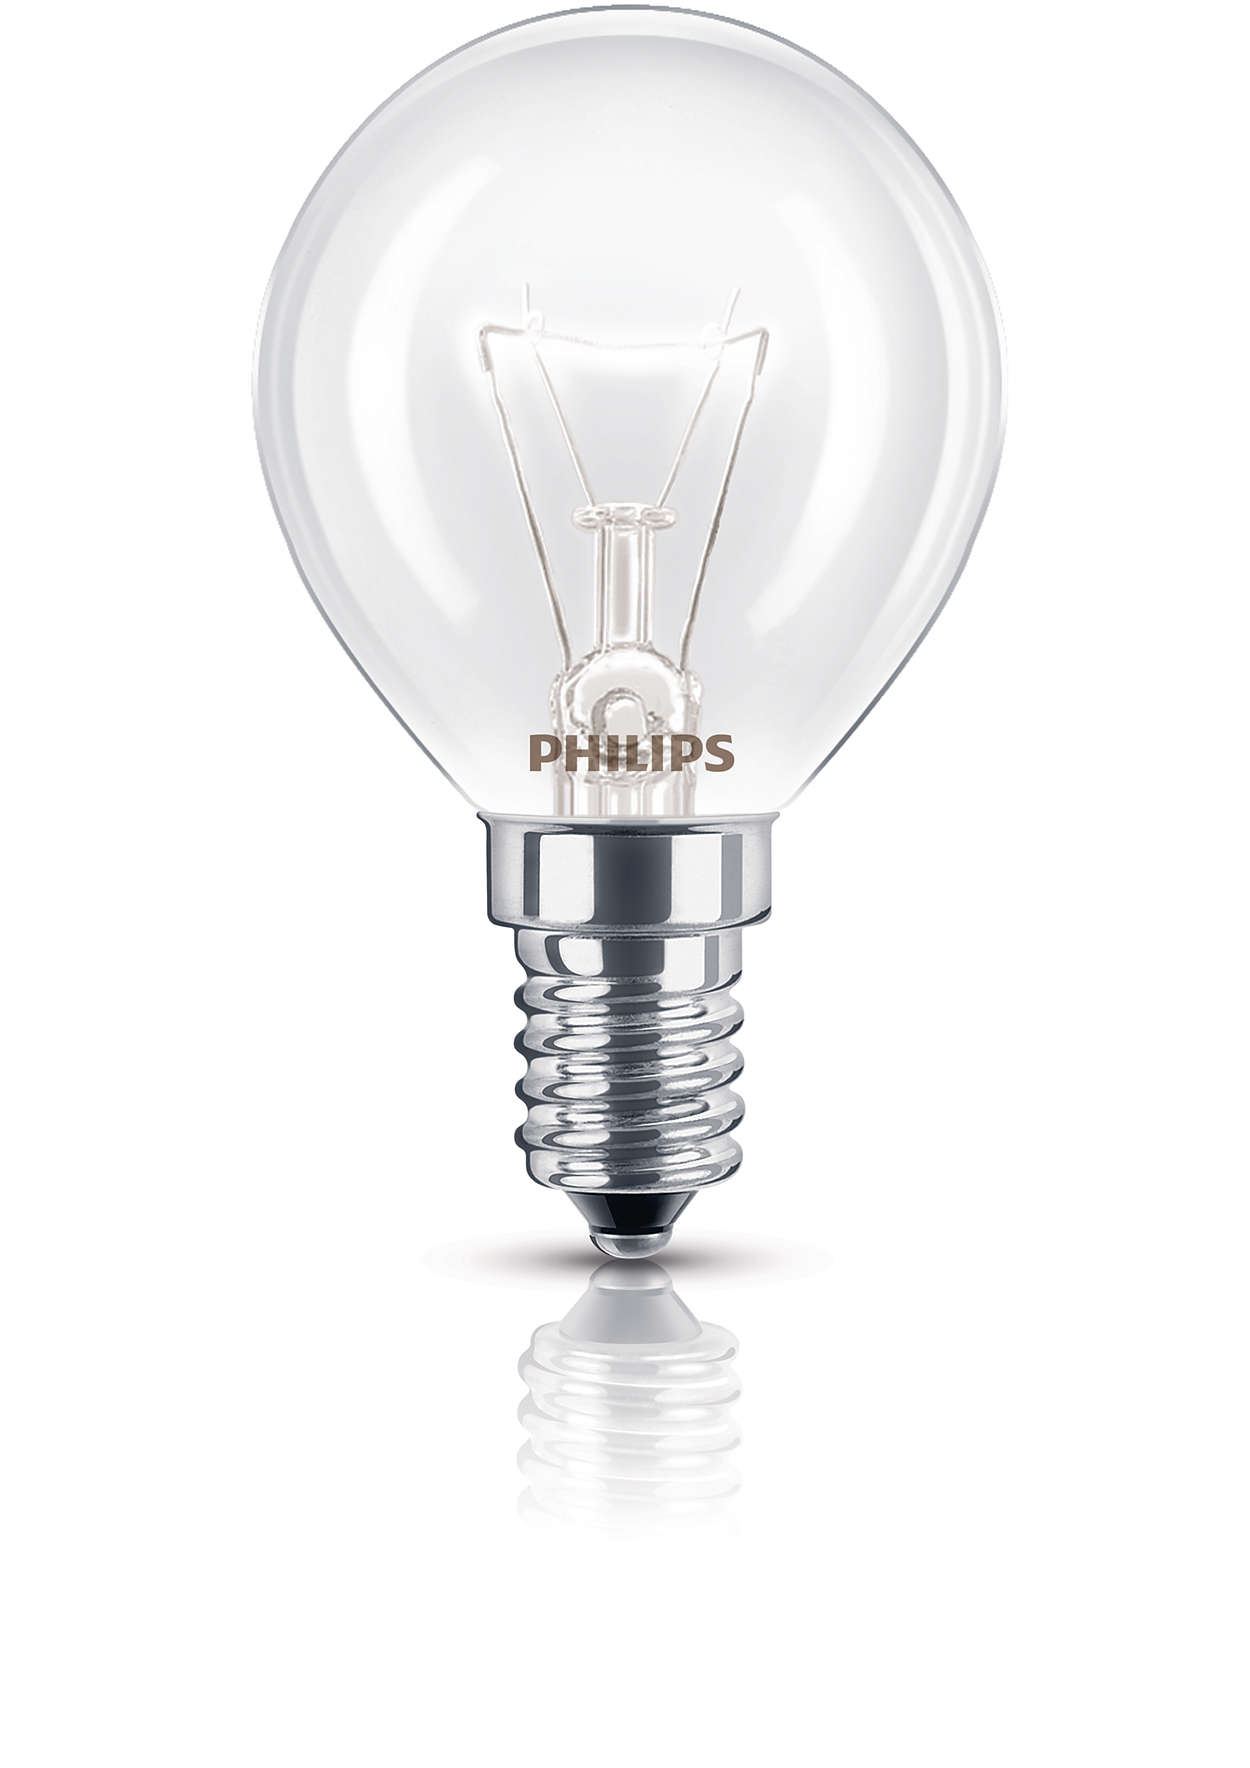 Special purpose appliance bulb